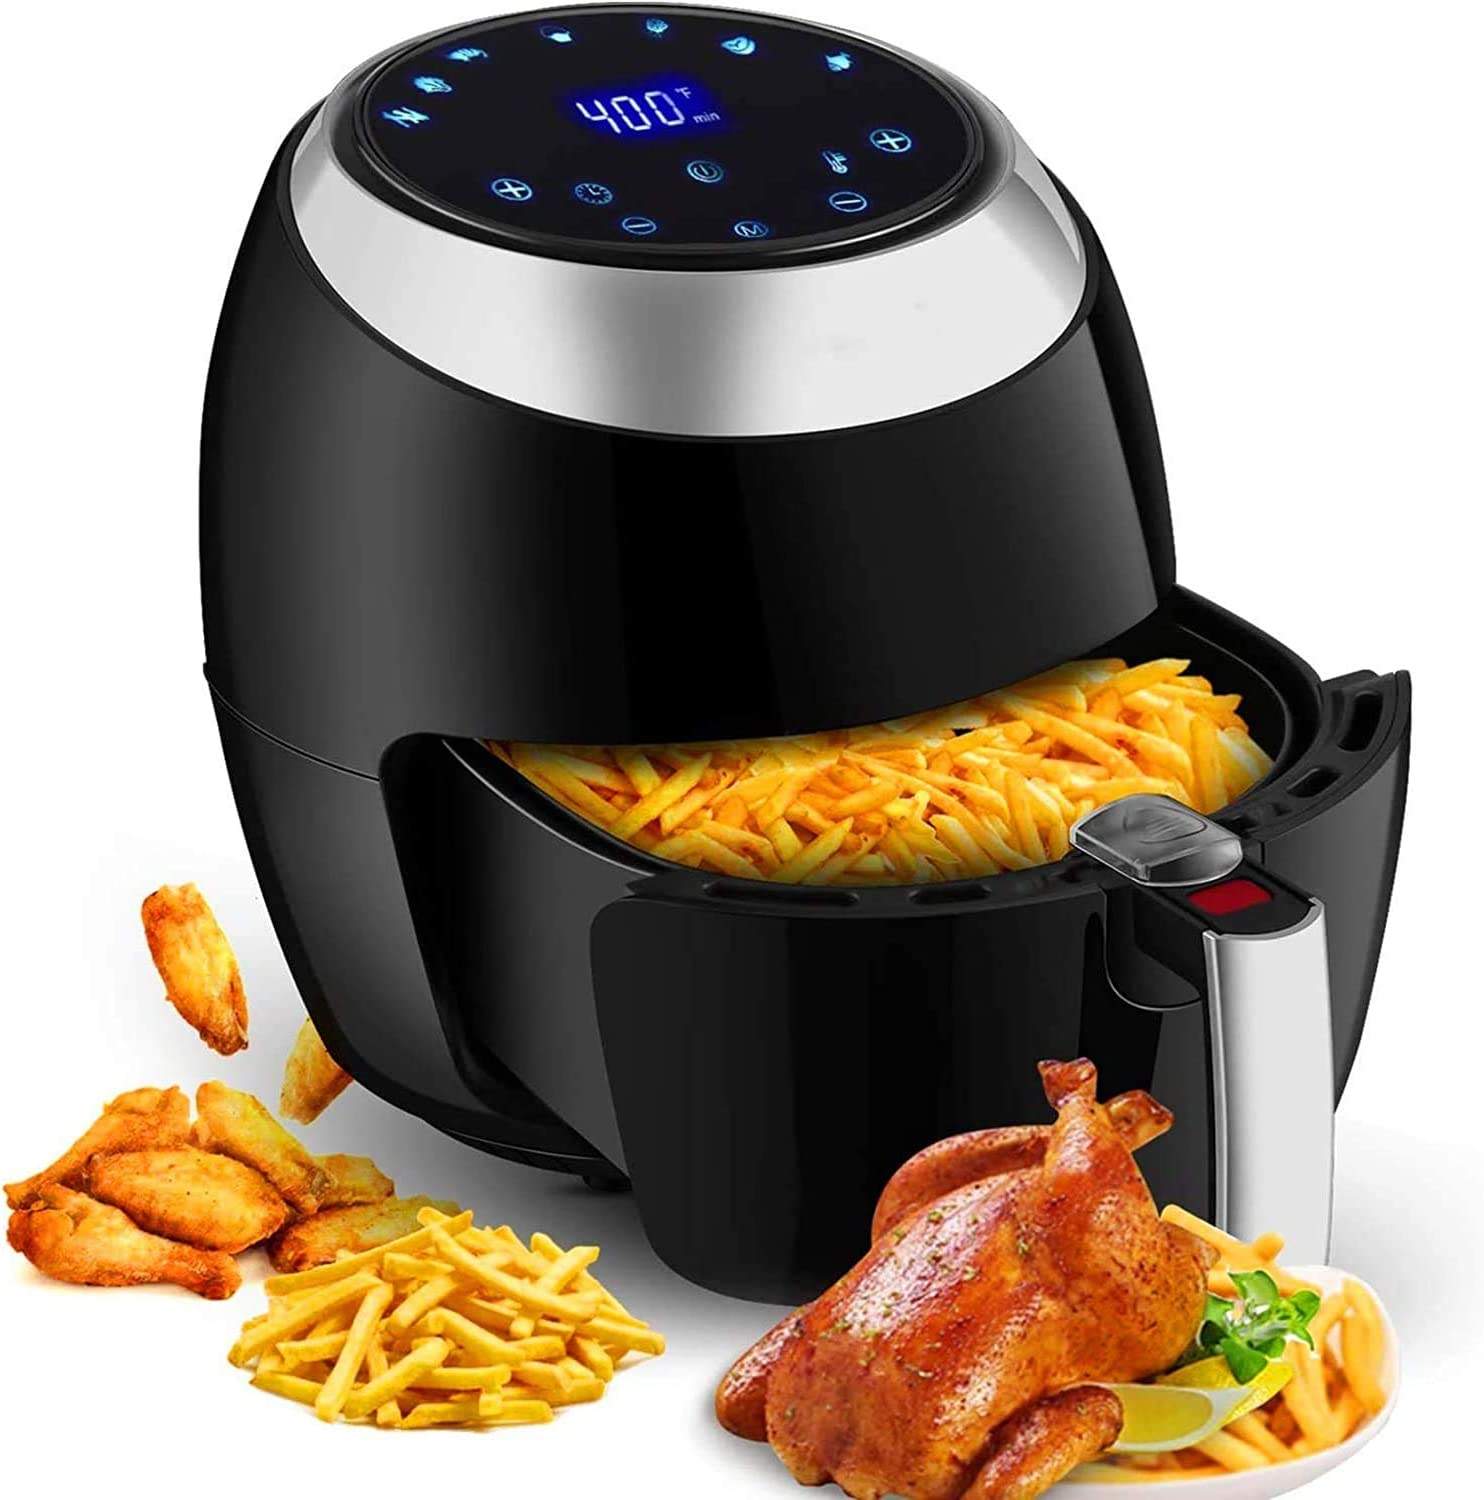 TOOLUCK Air Fryer, 6.8 Quart 1800W Electric Hot Oven Oilless Cooker with LCD Touch Digital Screen, Nonstick Basket